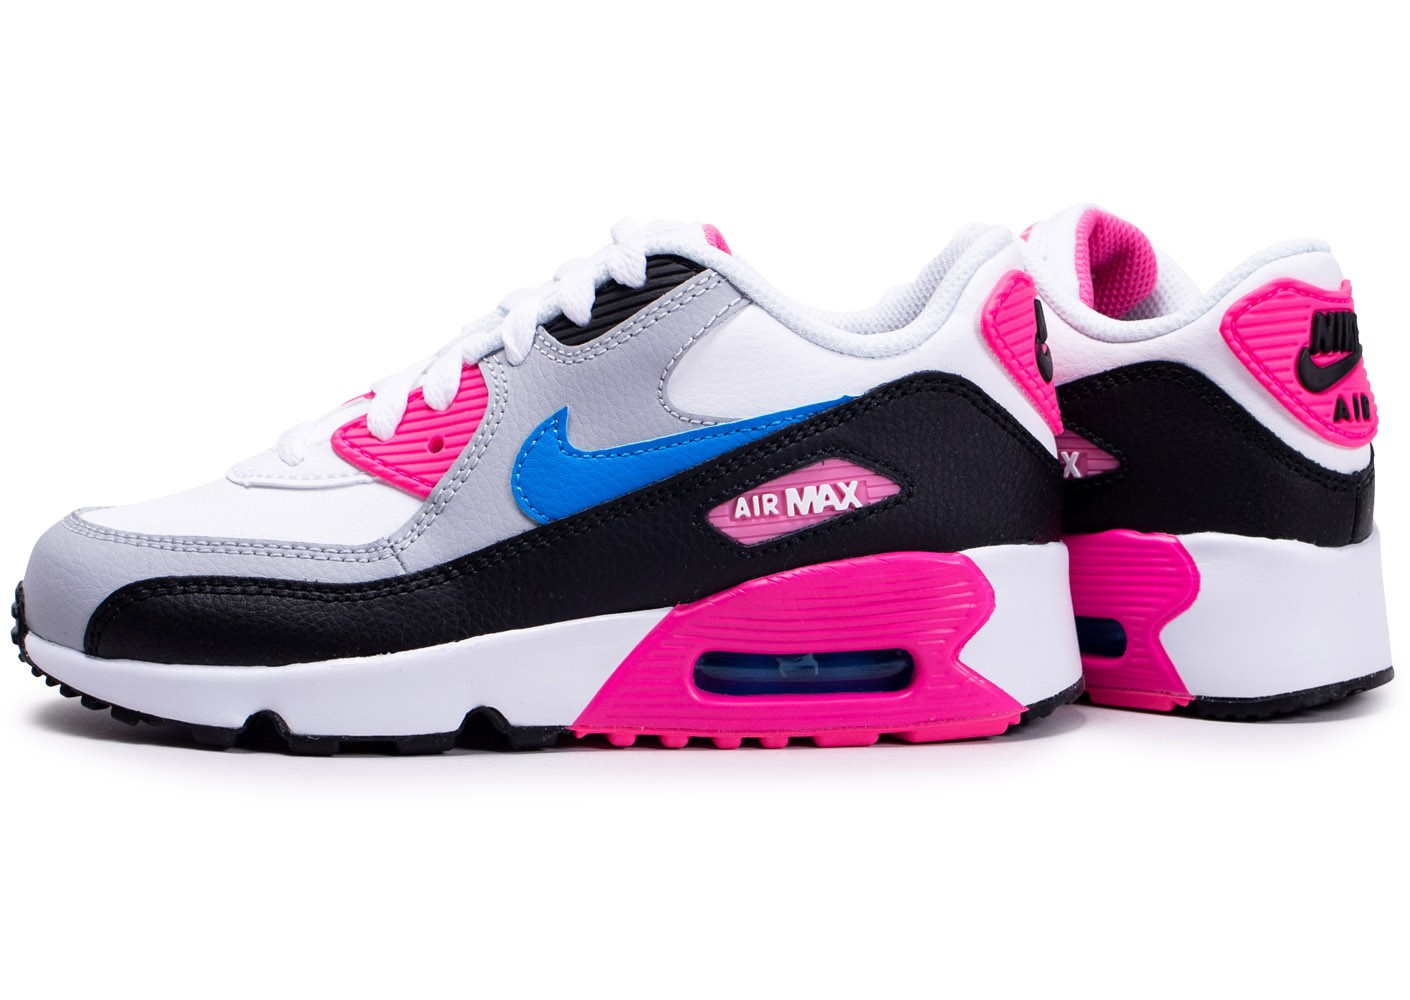 Nike Air Max 90 Leather blanc rose bleu enfant Chaussures